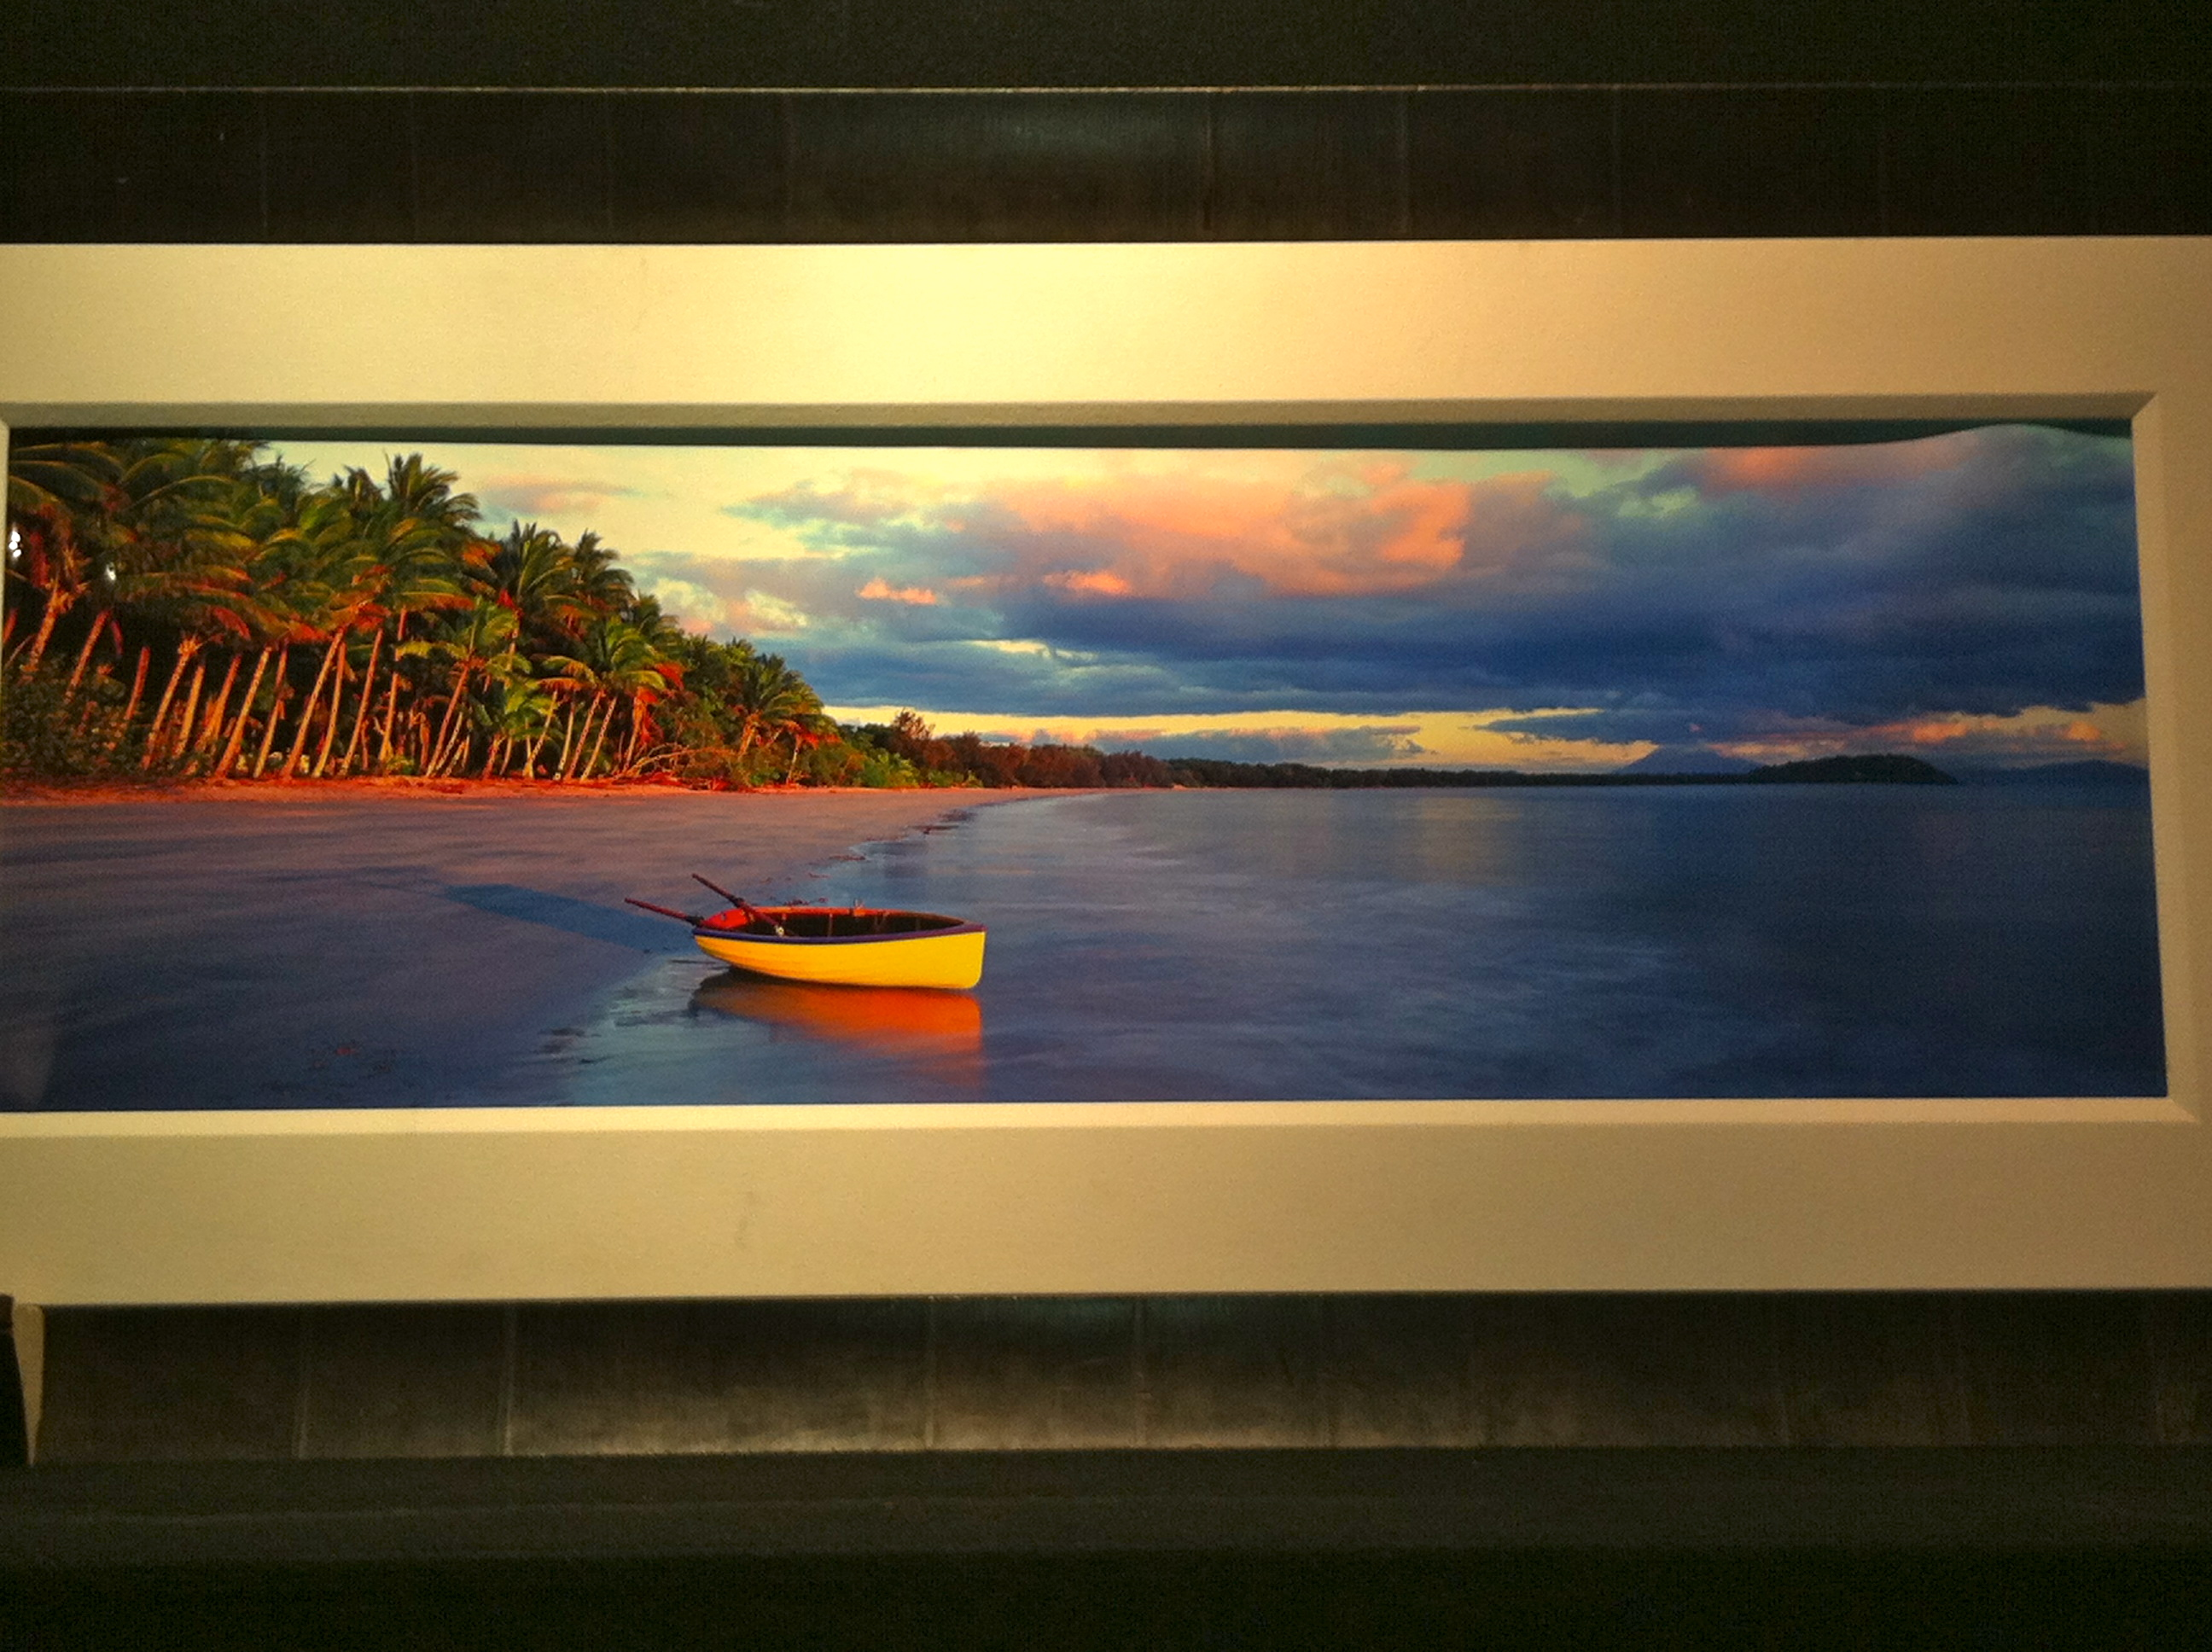 """Peter Lik, my favourite photographer, has a gallery in Soho. I cracked an invite to a party they were hosting and had them put up """"beached"""", the image I have above my bed in Australia, just to """"take me home"""" for 20 minutes…amazingly calming!"""